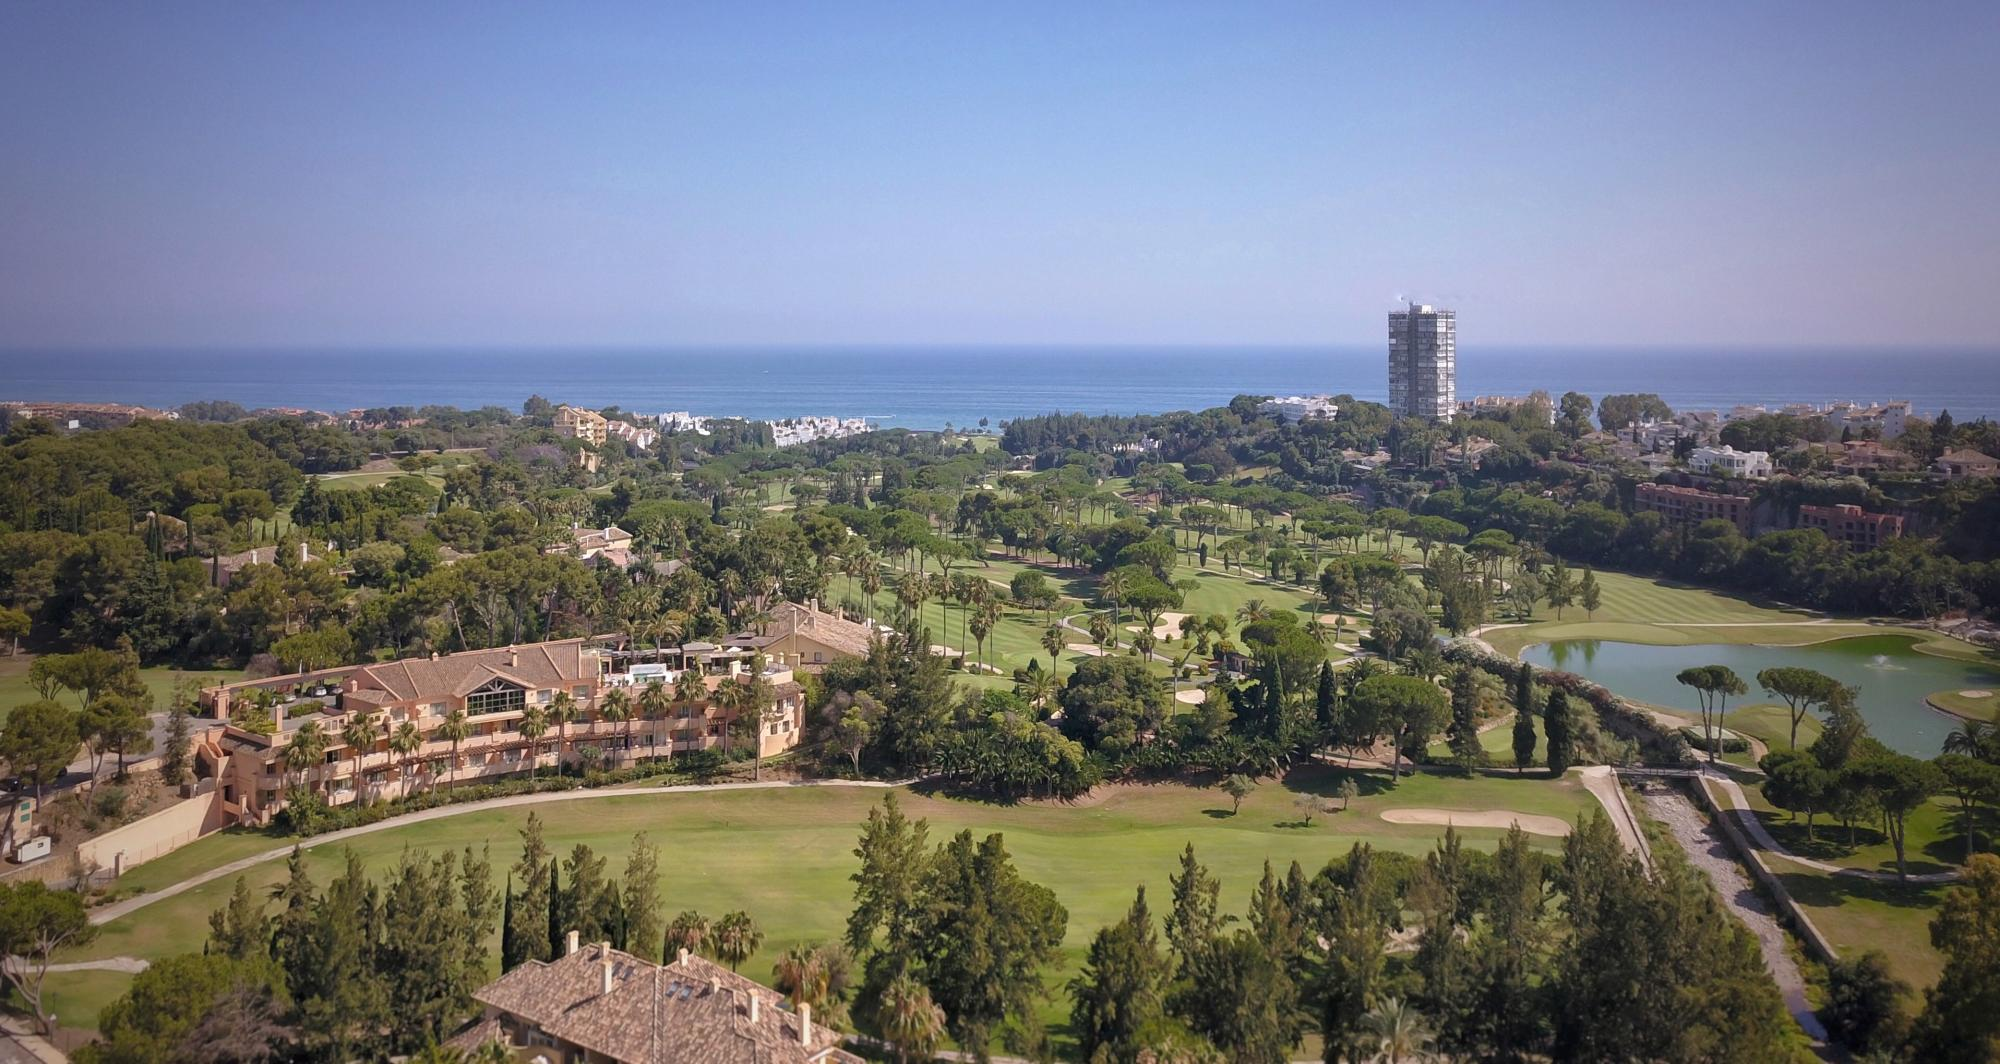 The Rio Real Golf Hotels lovely hotel in dramatic Costa Del Sol.